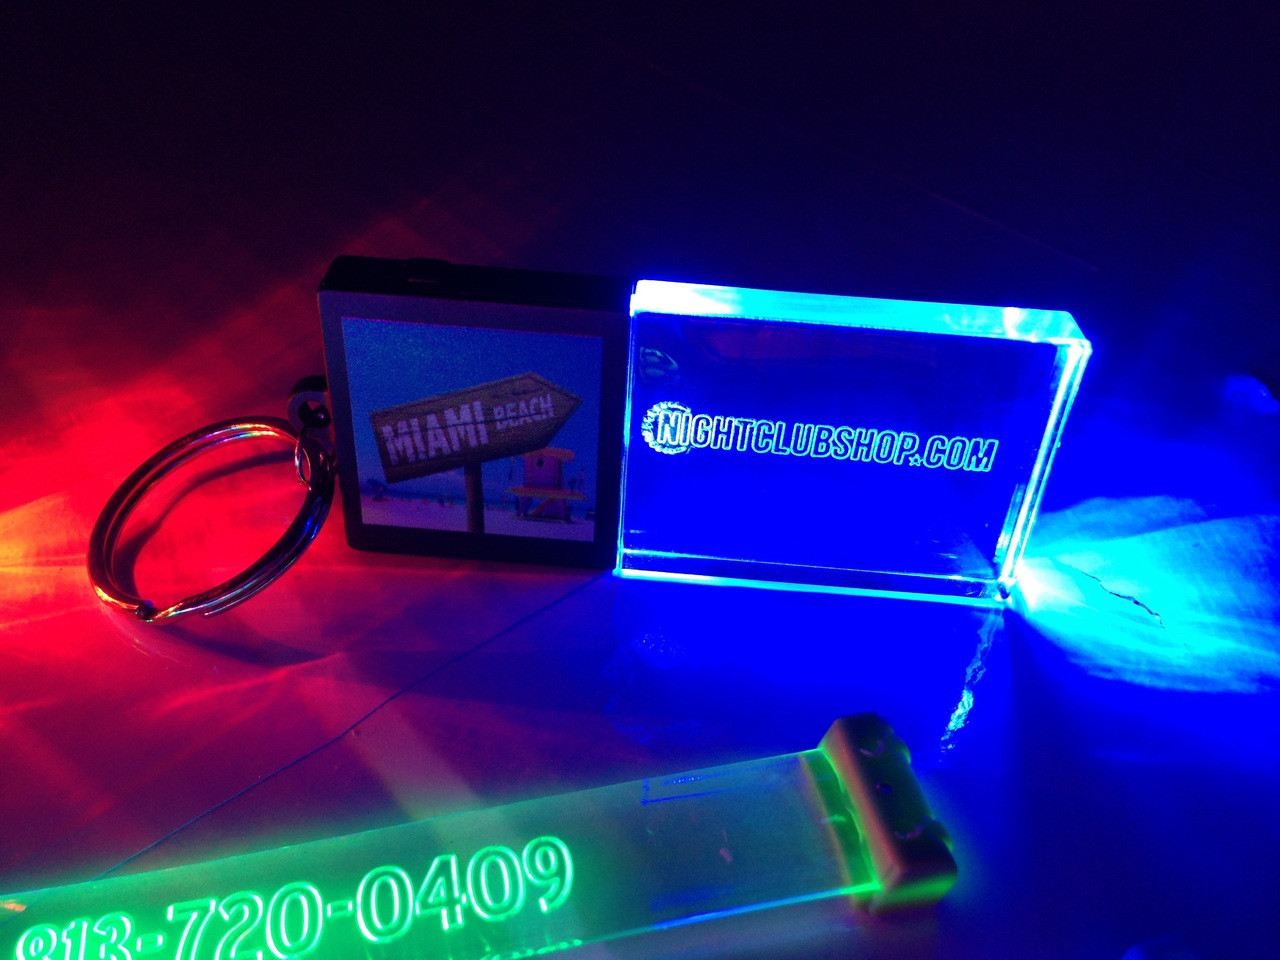 LED,Keychain,Key,chain,LED keychain, custom, BEAM, dual, print,engraved, logo,text, laser engraved,two logo, personalized,promo,merch,fundraiser,nightclub,fund raiser,light up